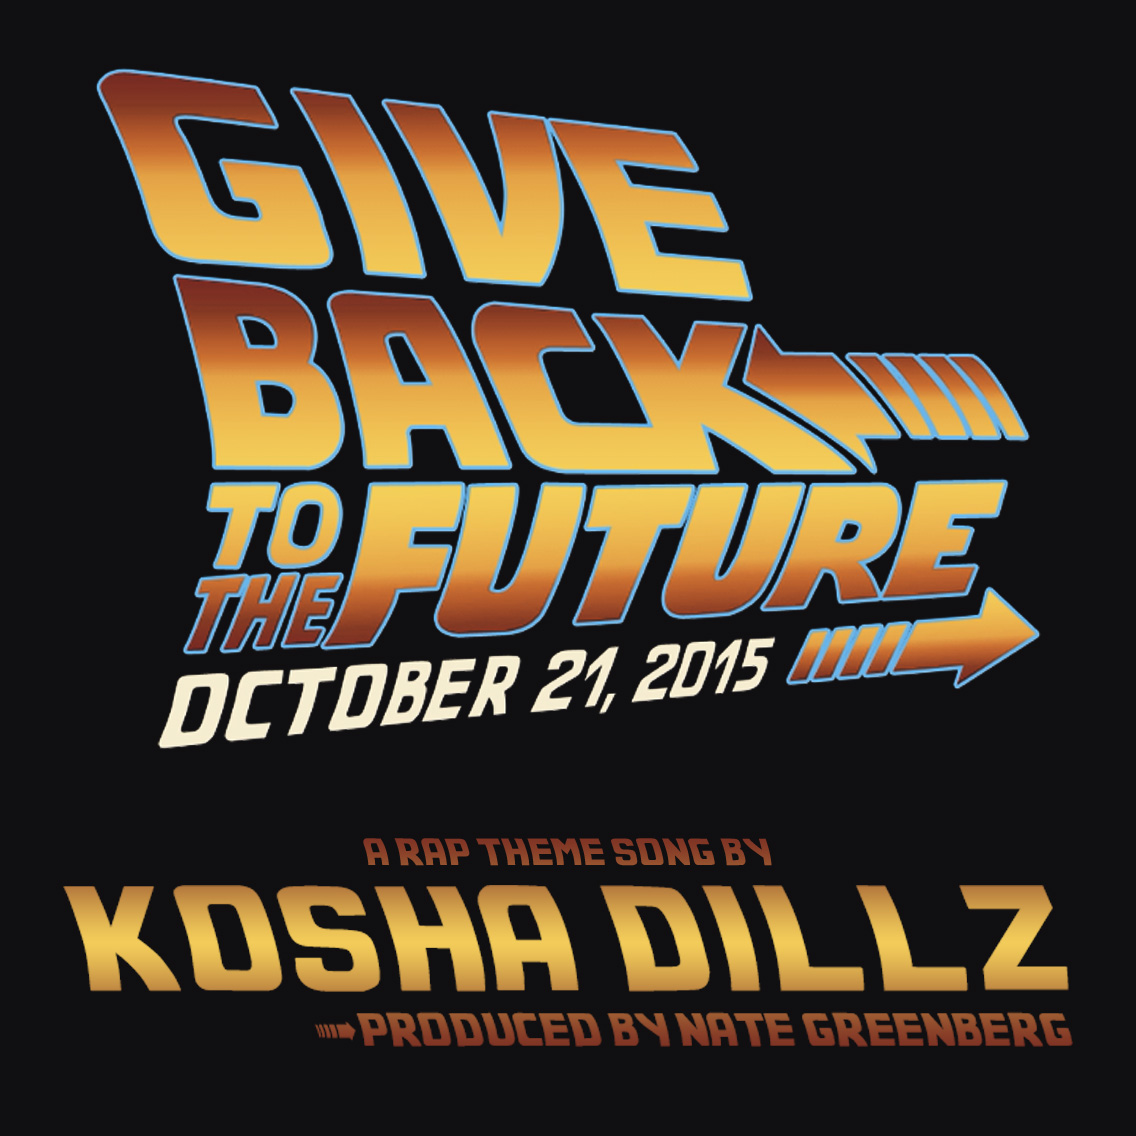 Listen to the Back to the Future Rap Song